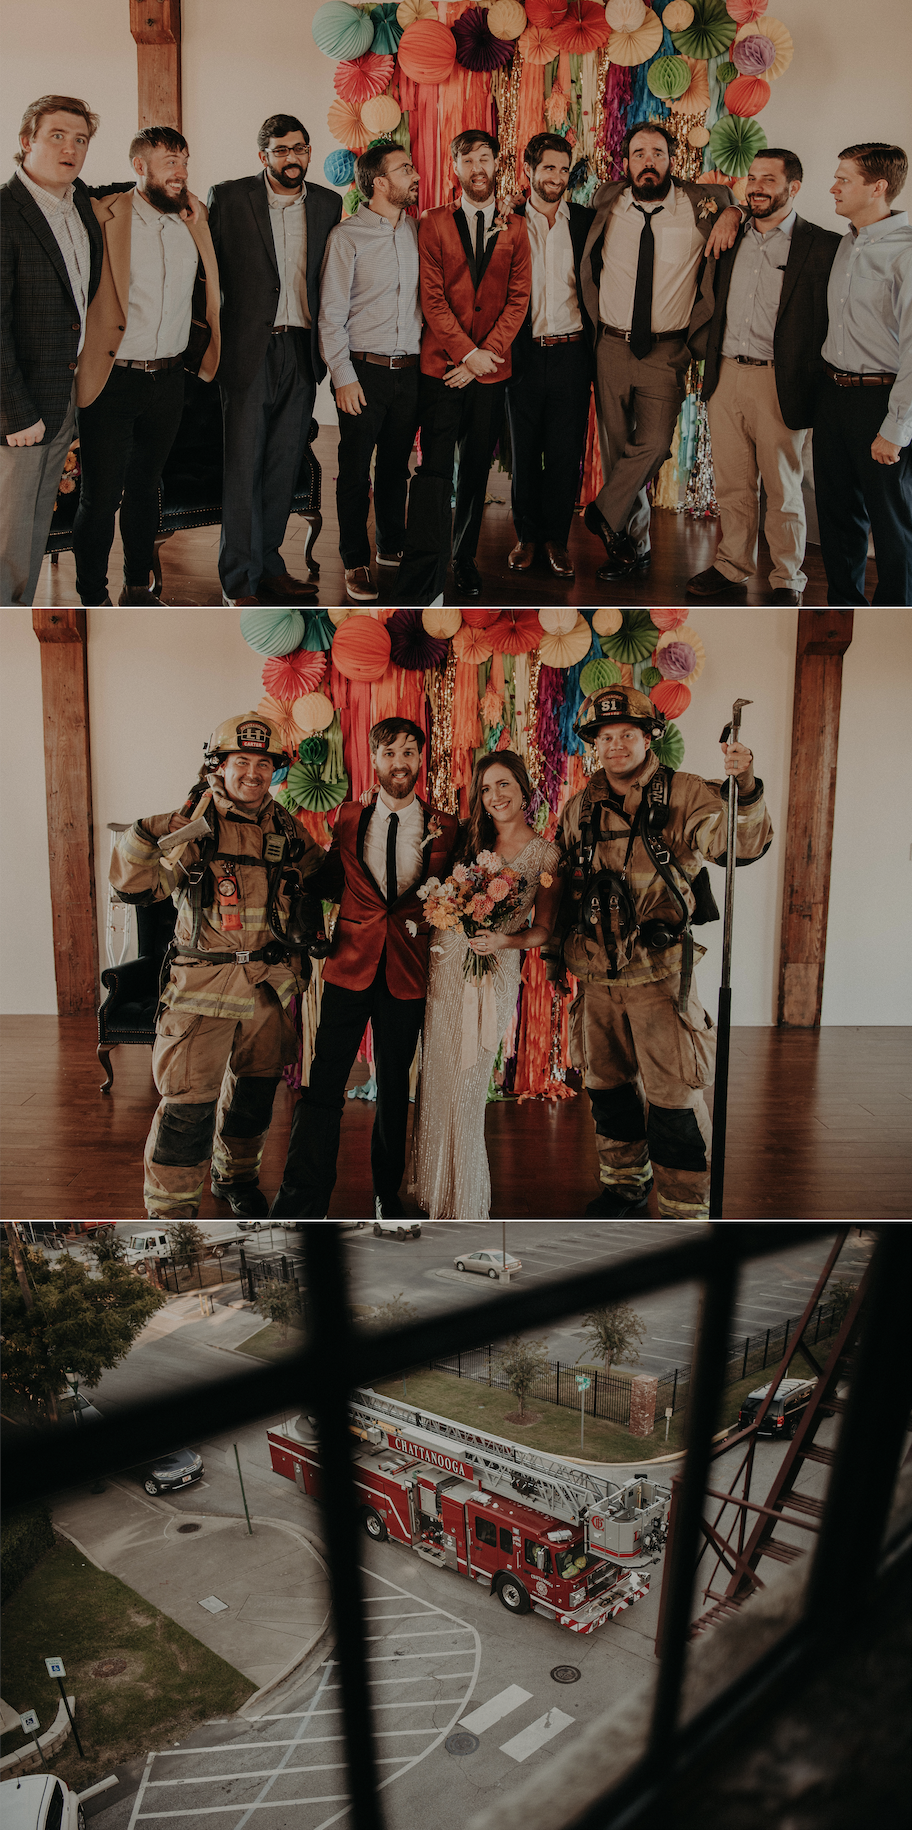 The fire alarm went off right after their ceremony ended, and the Firemen agreed to a few photos!